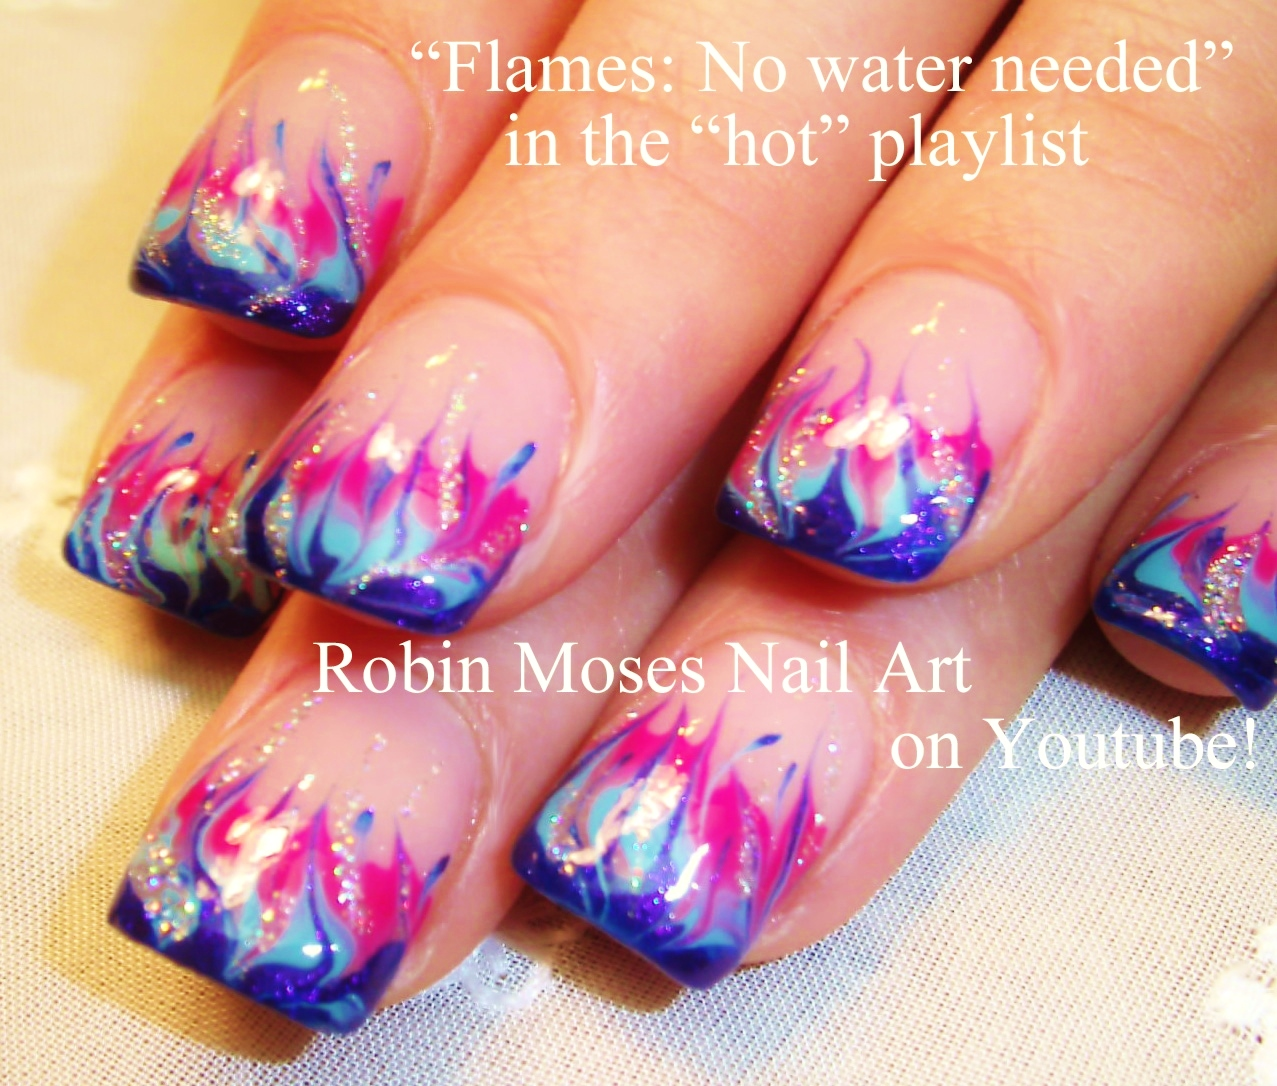 Robin moses nail art marble nails with no water needed no water nail swirling elegant nail art prinsesfo Images